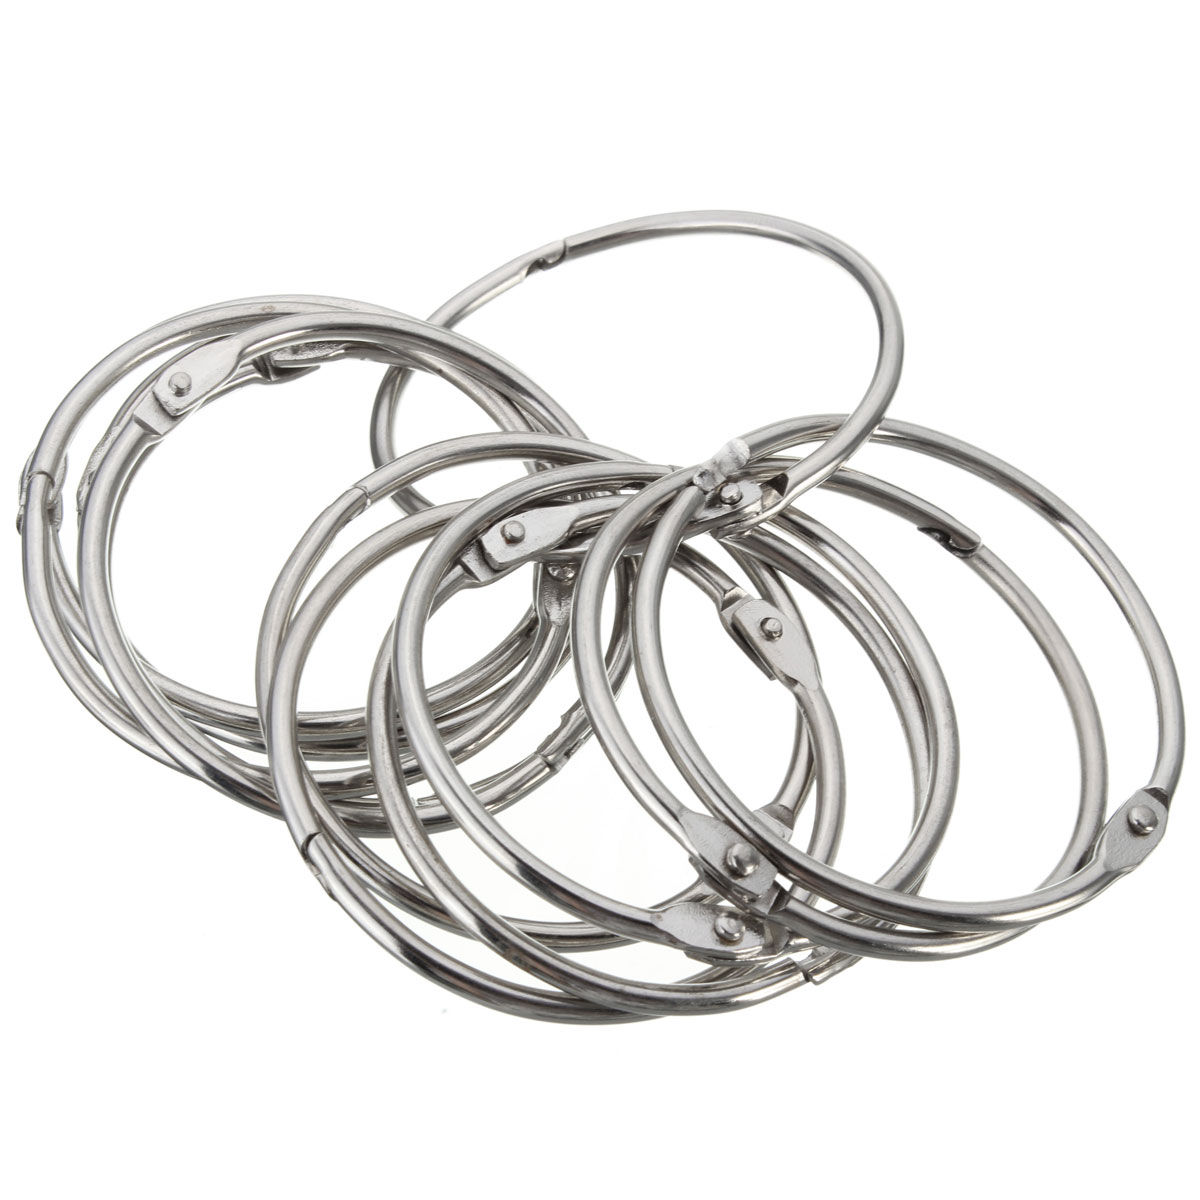 12pcs Silver Round Circular Stainless Steel Shower Curtain Hooks Rings Anti Rust